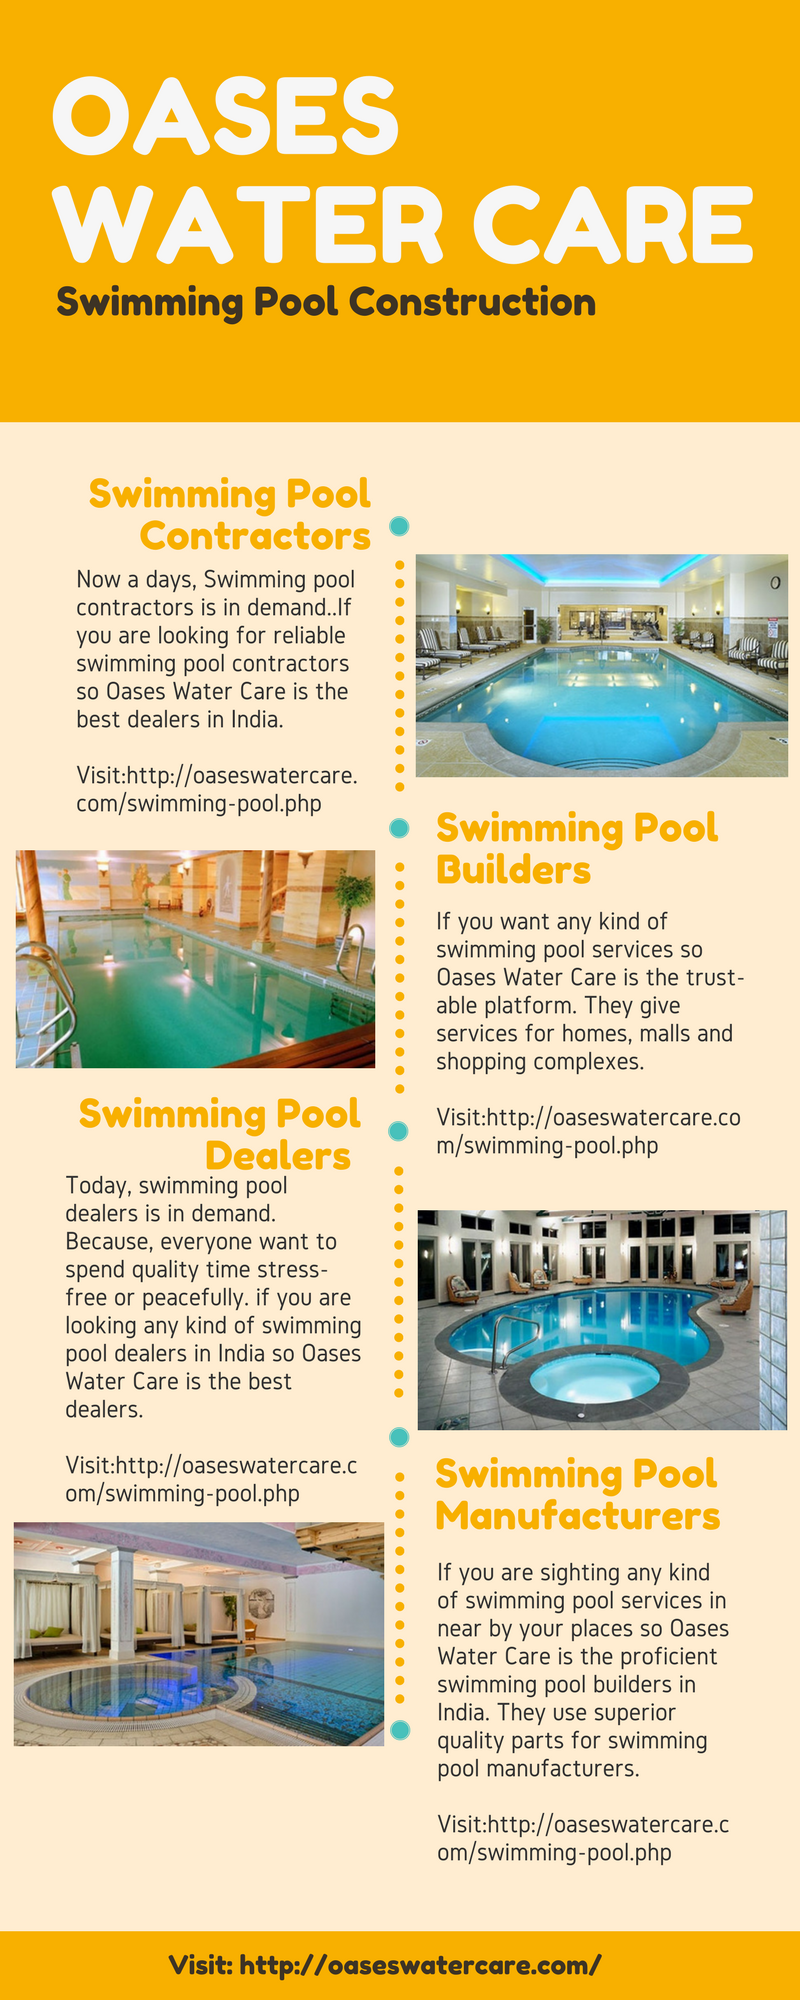 Oases Water Care Deals With Swimming Pool Construction, Swimming Pool  Dealers, Swimming Pool Manufacturers